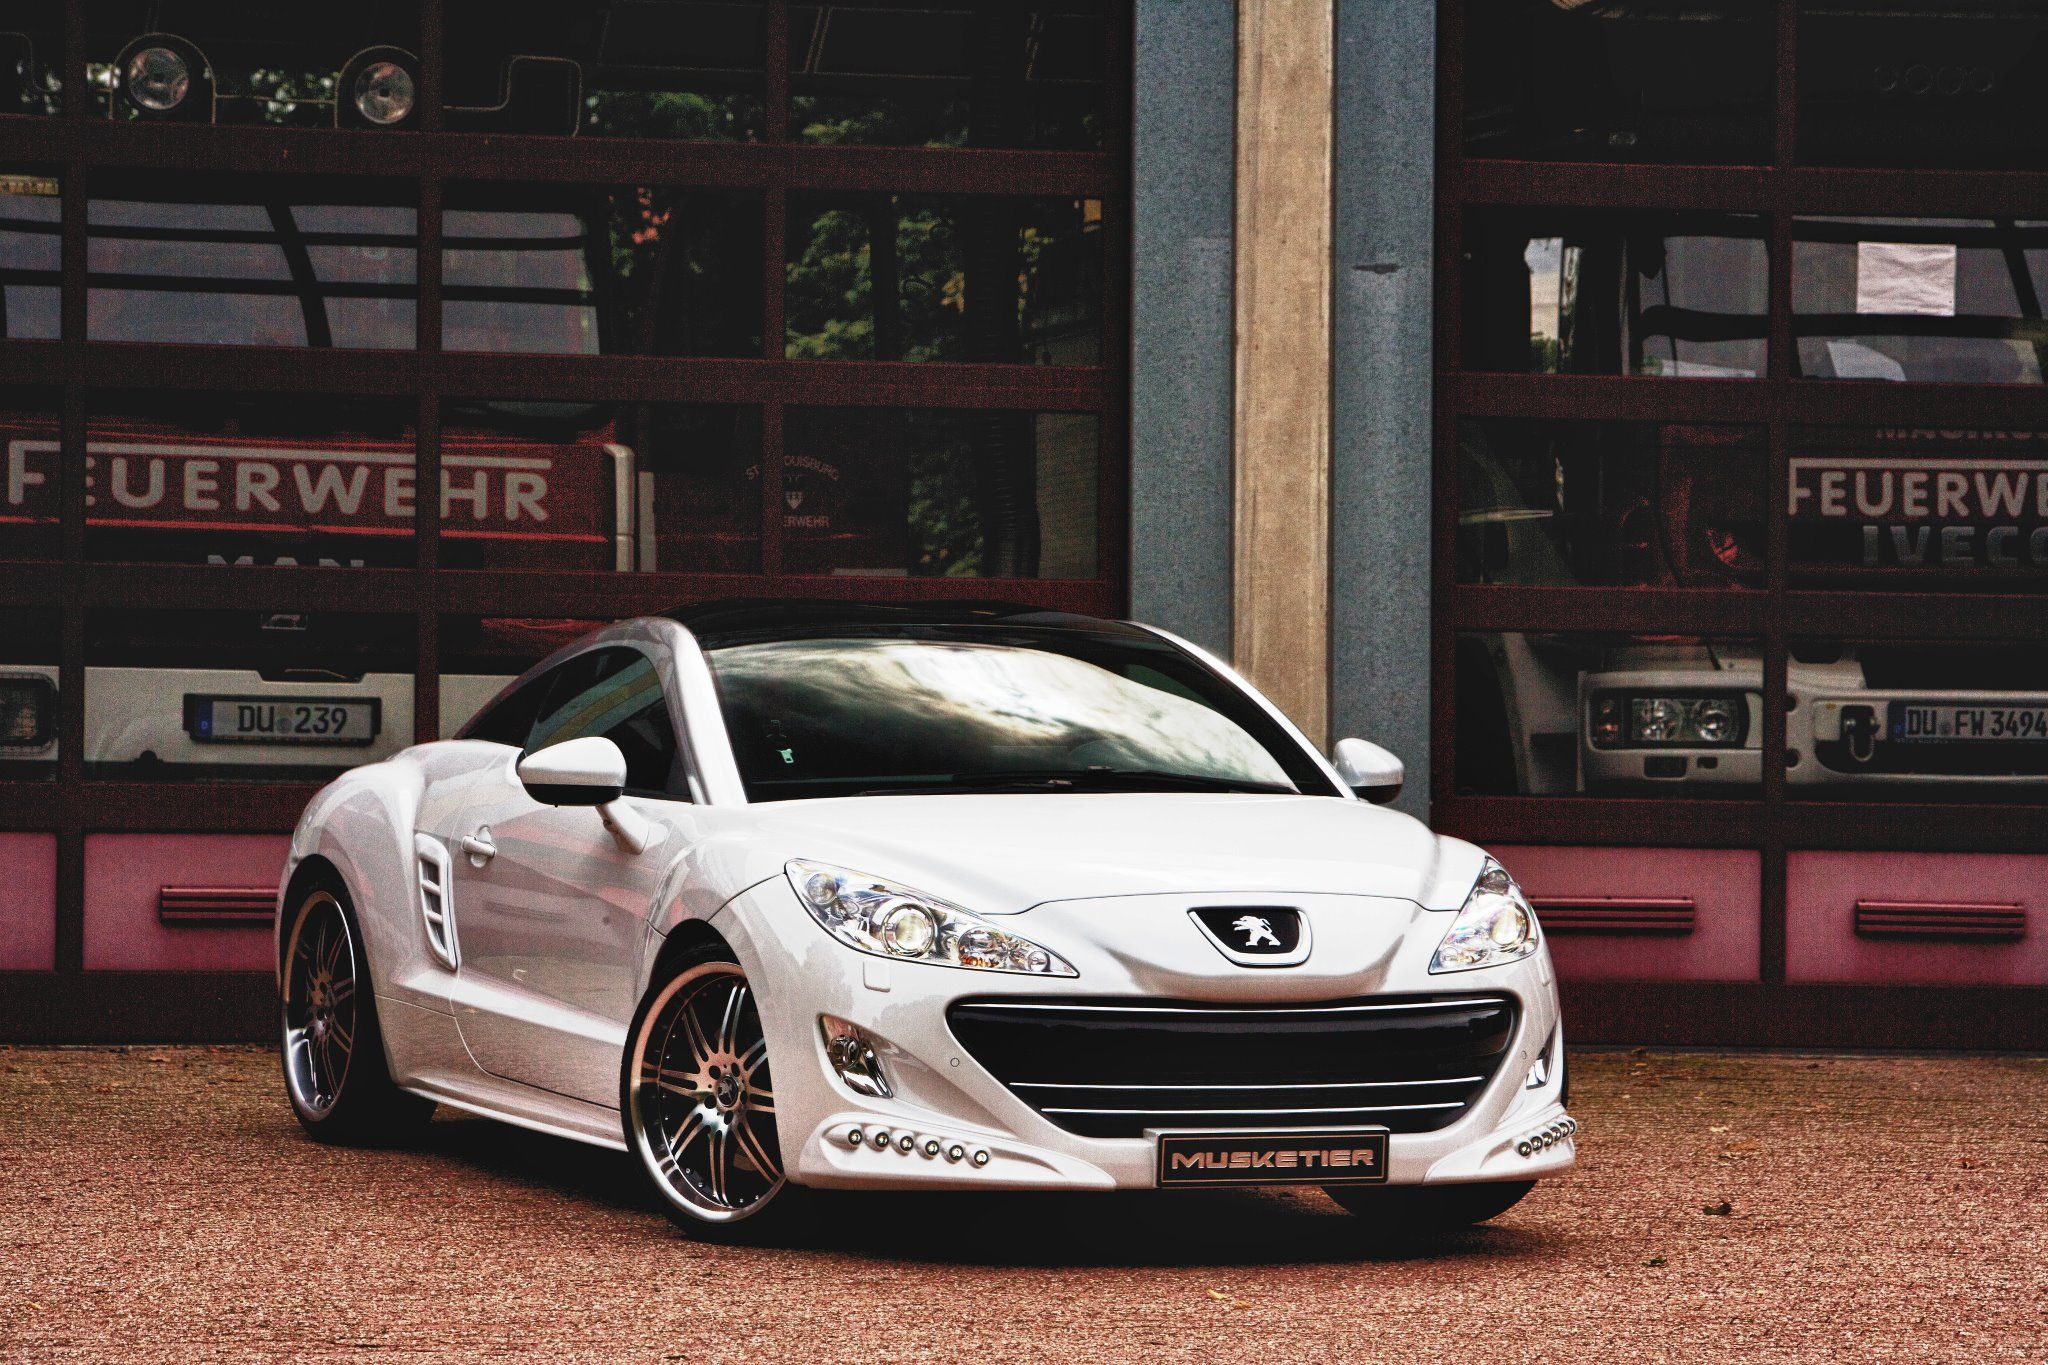 peugeot rcz tuning by musketier motores engines. Black Bedroom Furniture Sets. Home Design Ideas